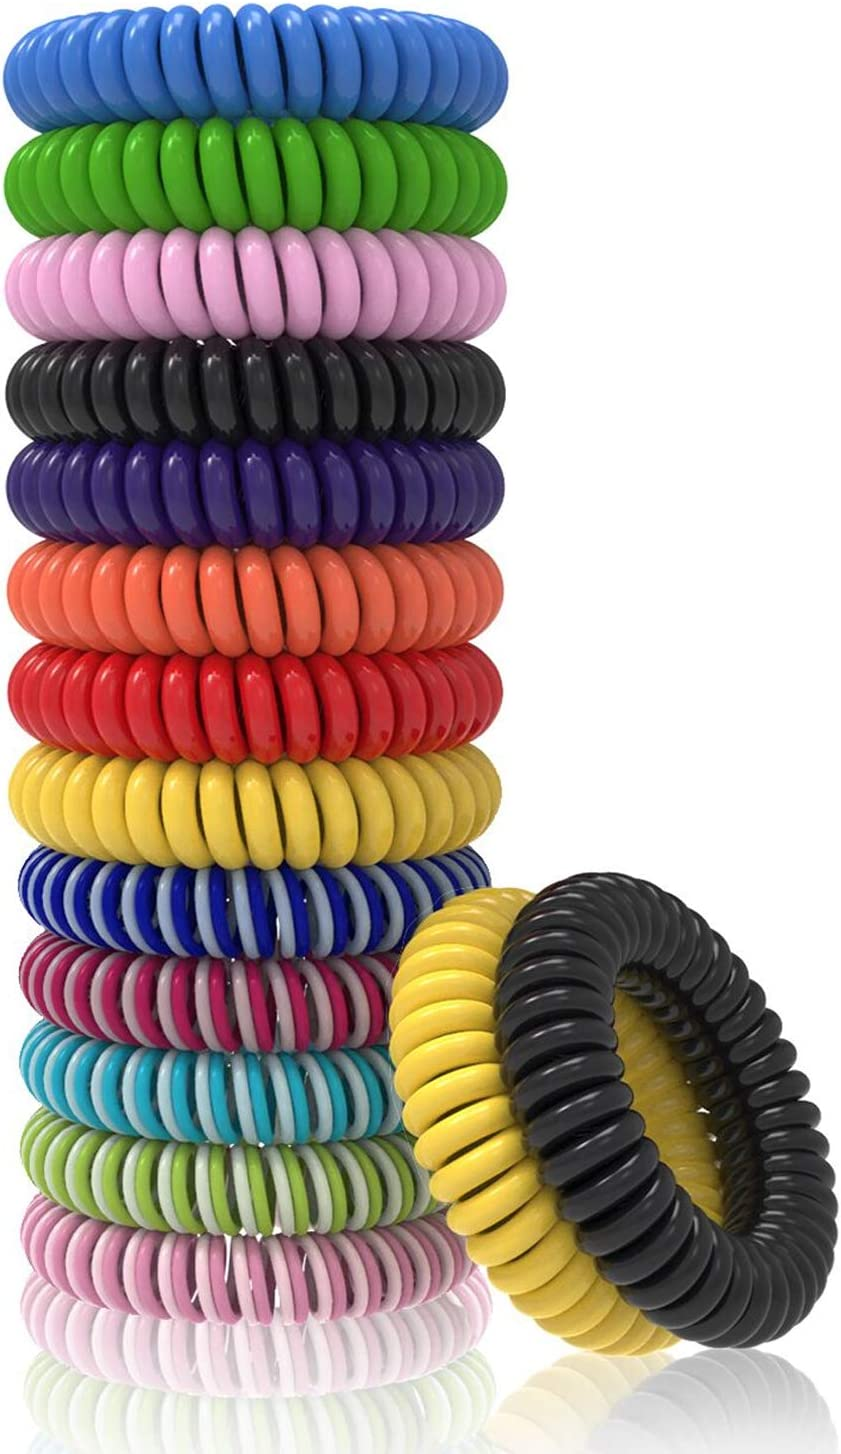 15 Pack T98 Mosquito Repellent Bracelet MulticolorB Insect Repellent Mosquito Bands Natural Plant Oil Mosquito Wrist Band for Adult Child Camping Climbing Bedroom Grilling